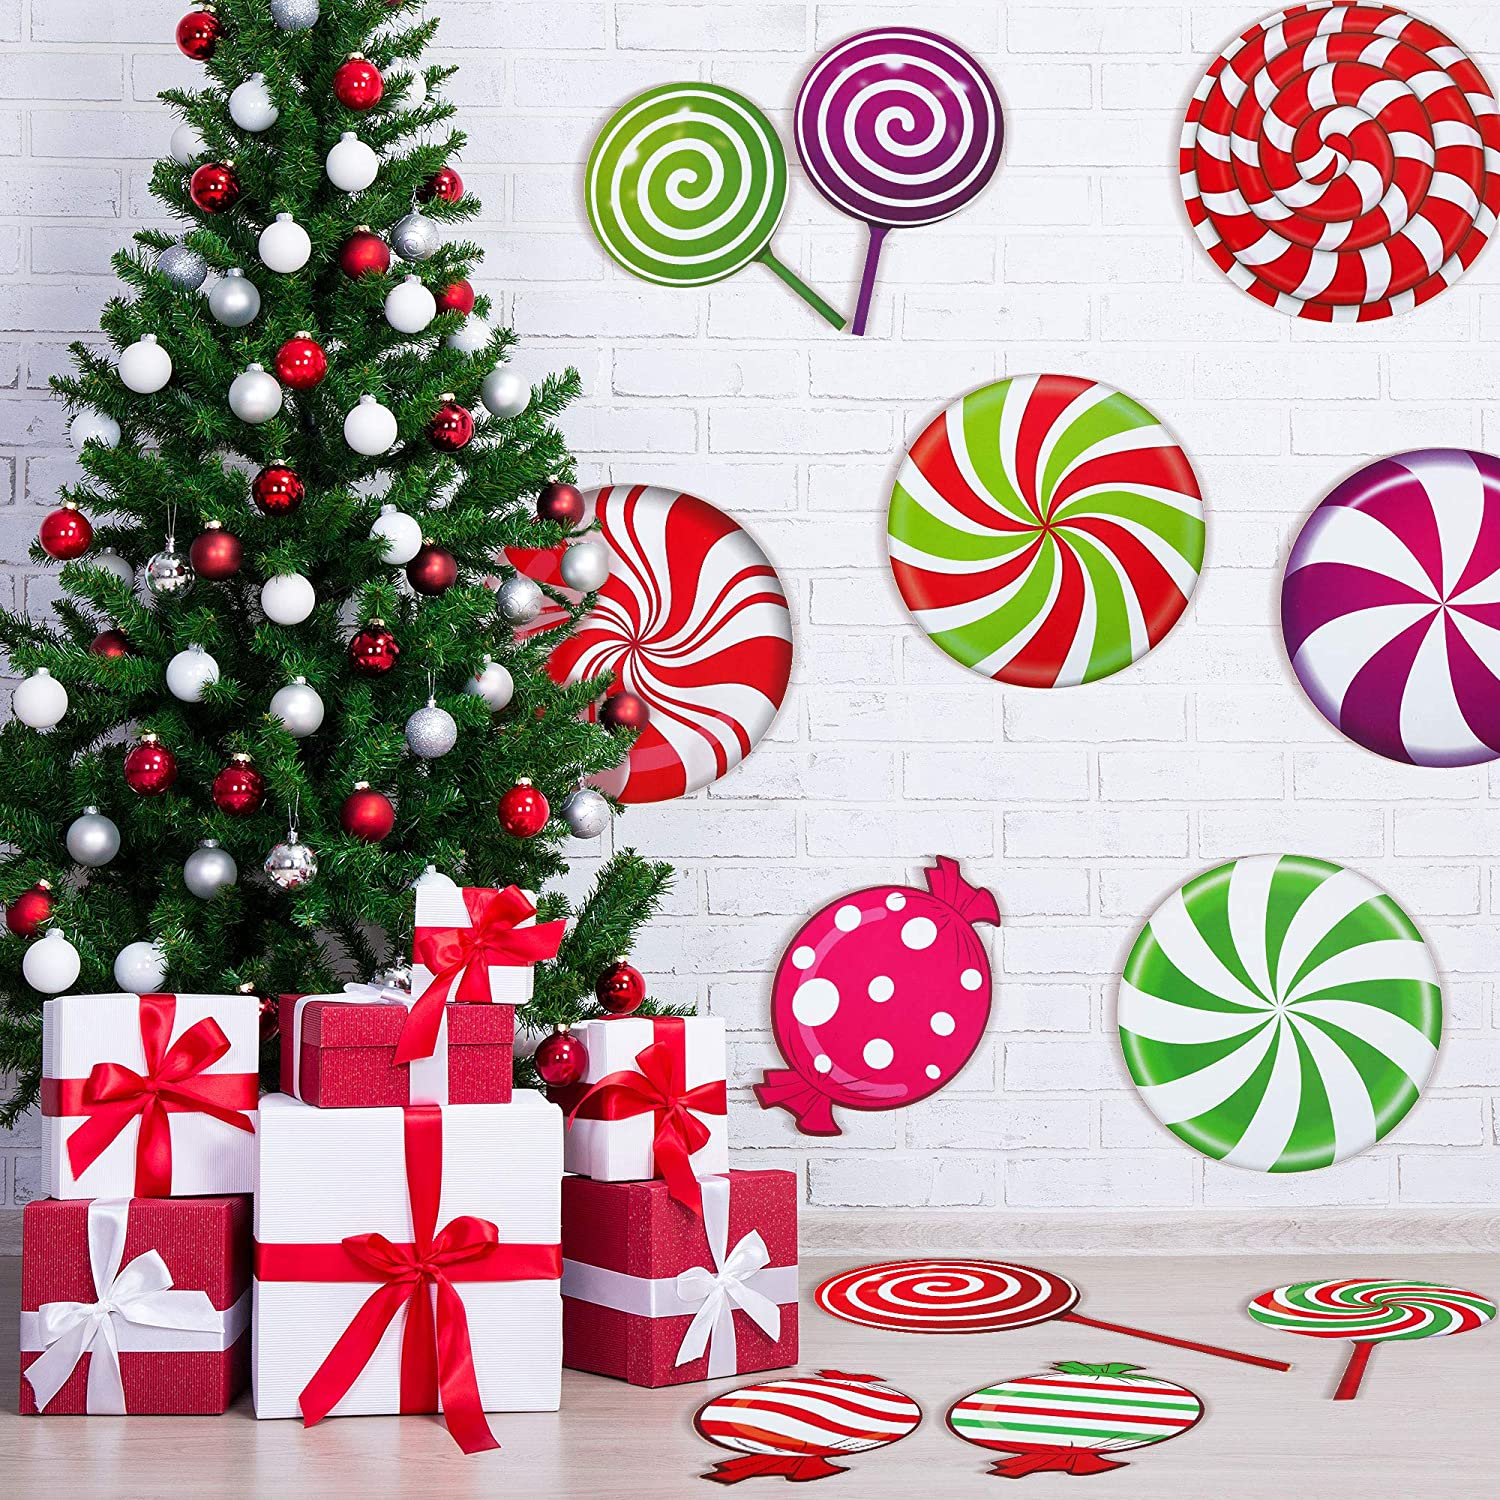 Outus 30 Pieces Peppermint Floor Decals Stickers Colorful Candies Round Lollipop Floor Decals Stickers for Christmas Decoration Candy Party, Wall Decals Stickers Xmas Candy Party Decor and Supplies